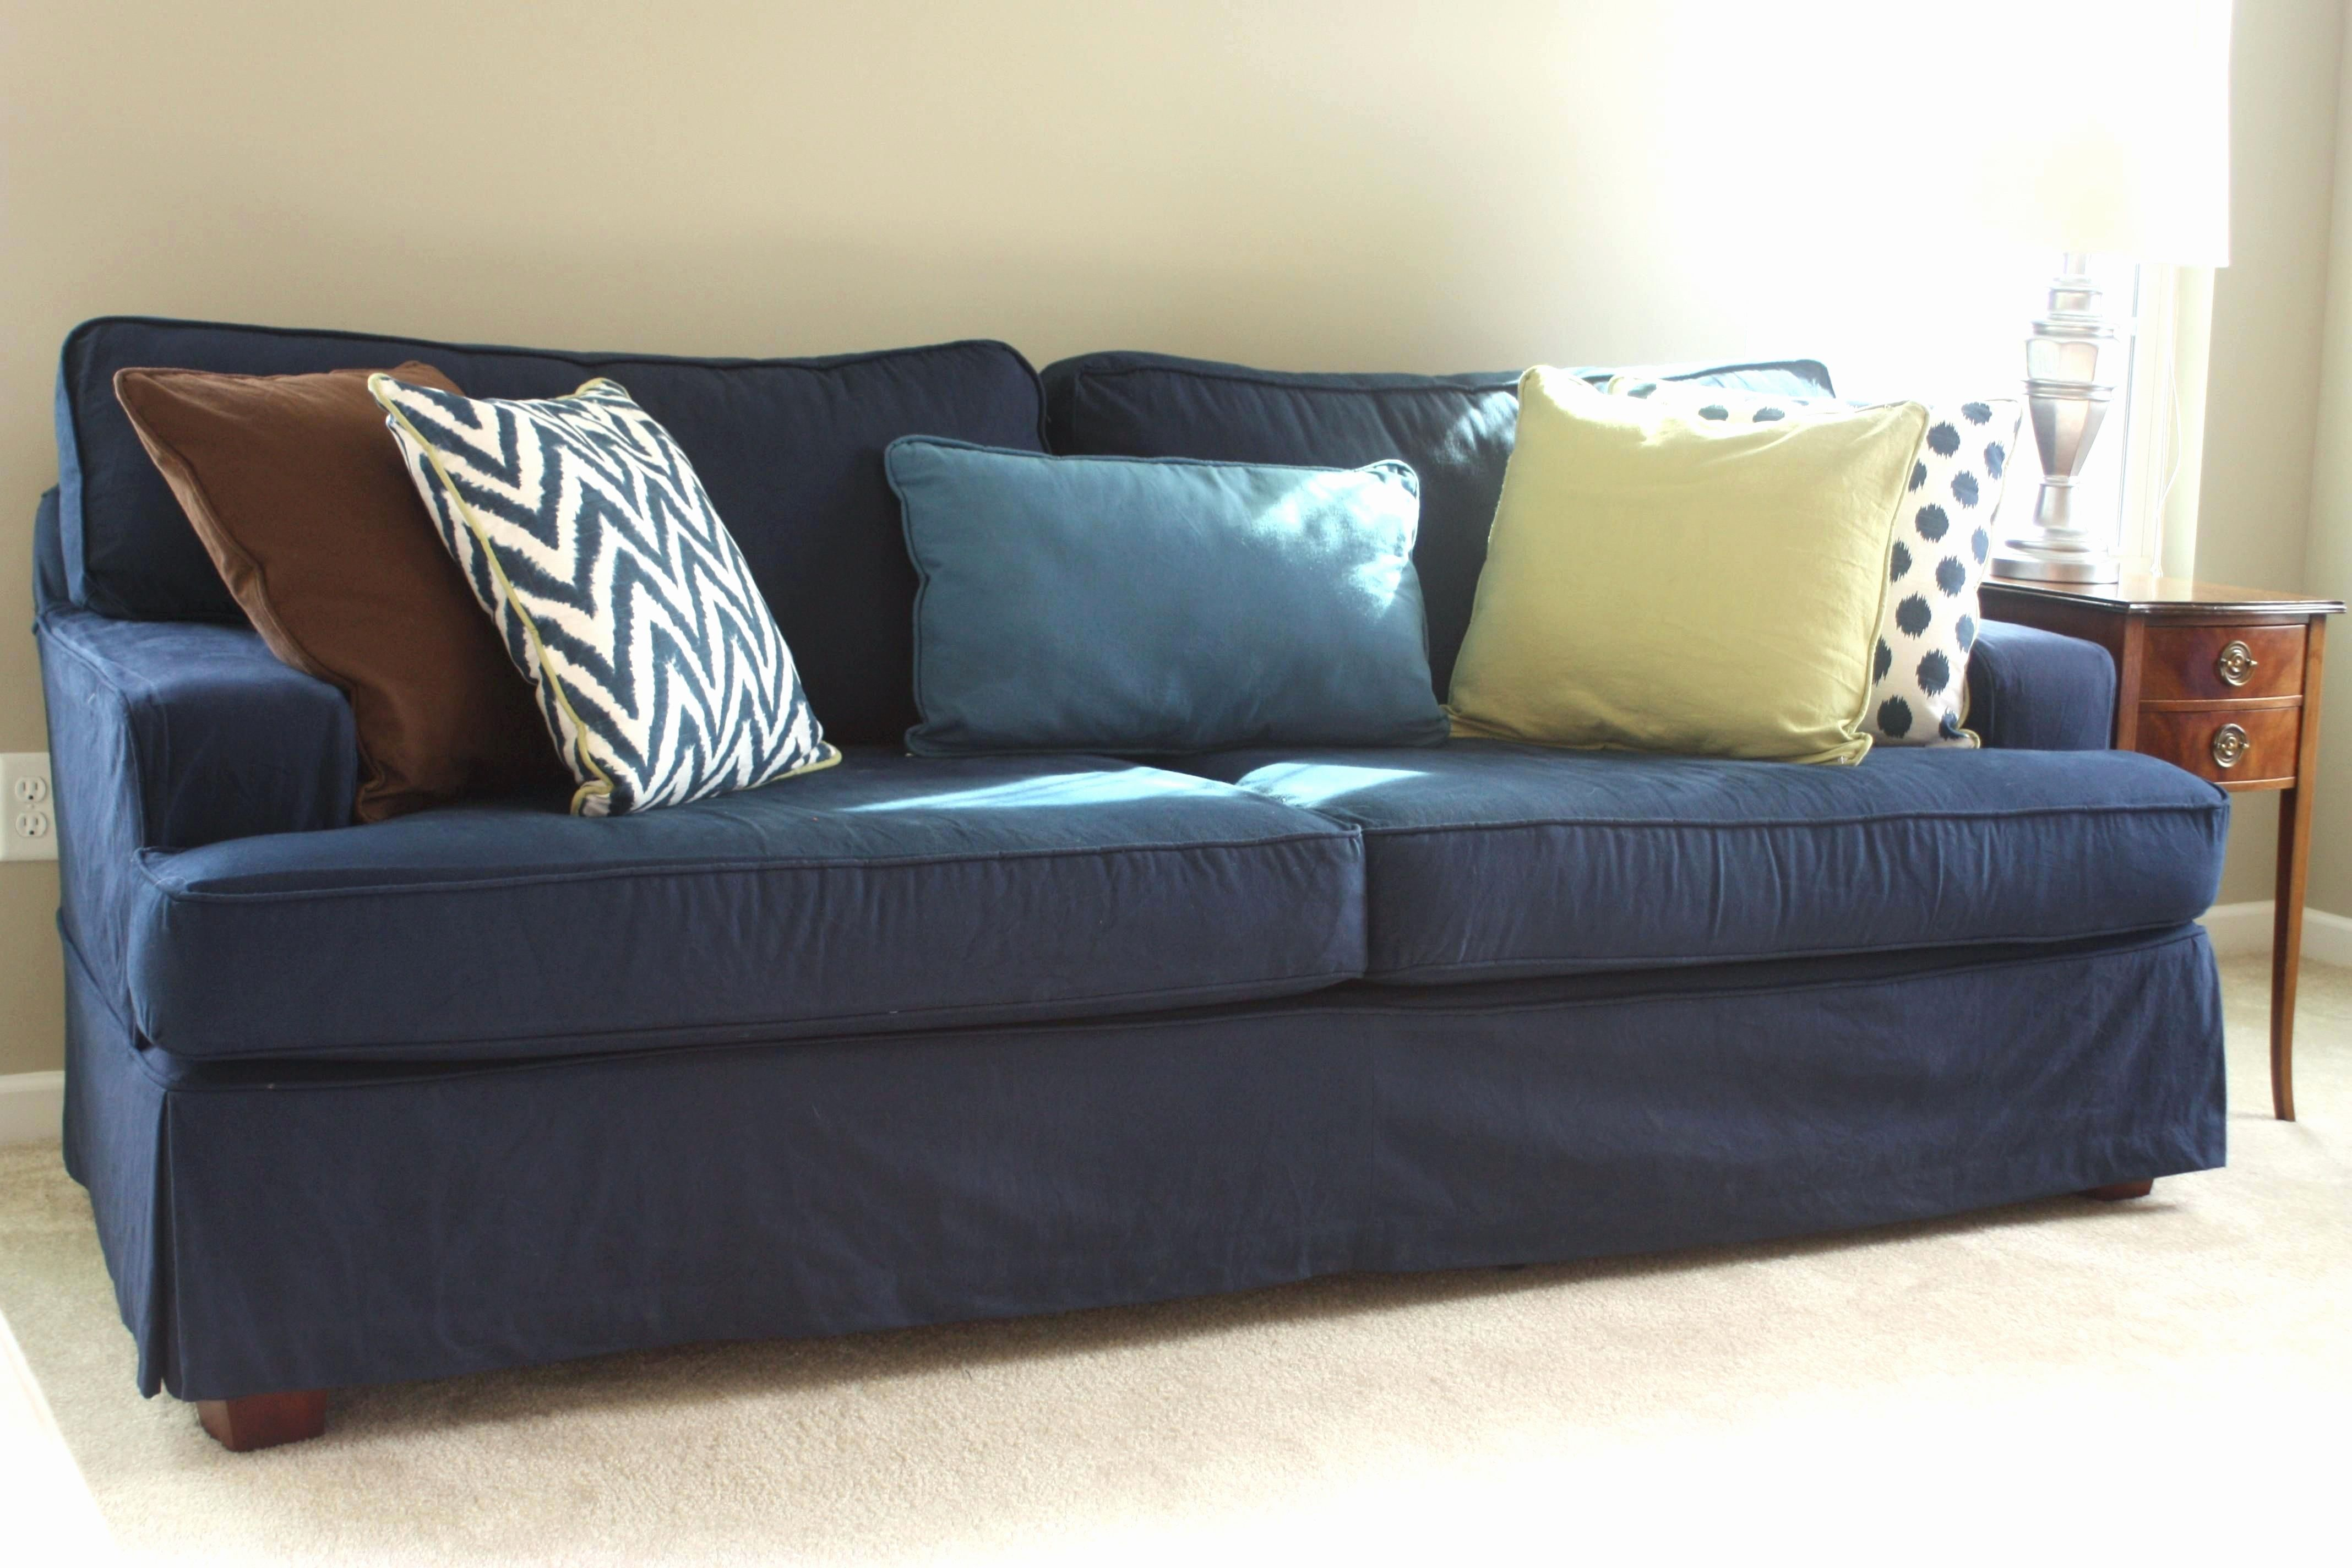 Sofa Covers Uk Best Of Ebay Sofa Covers Shot Couch Covers Ikea Ireland Ebay Sofa